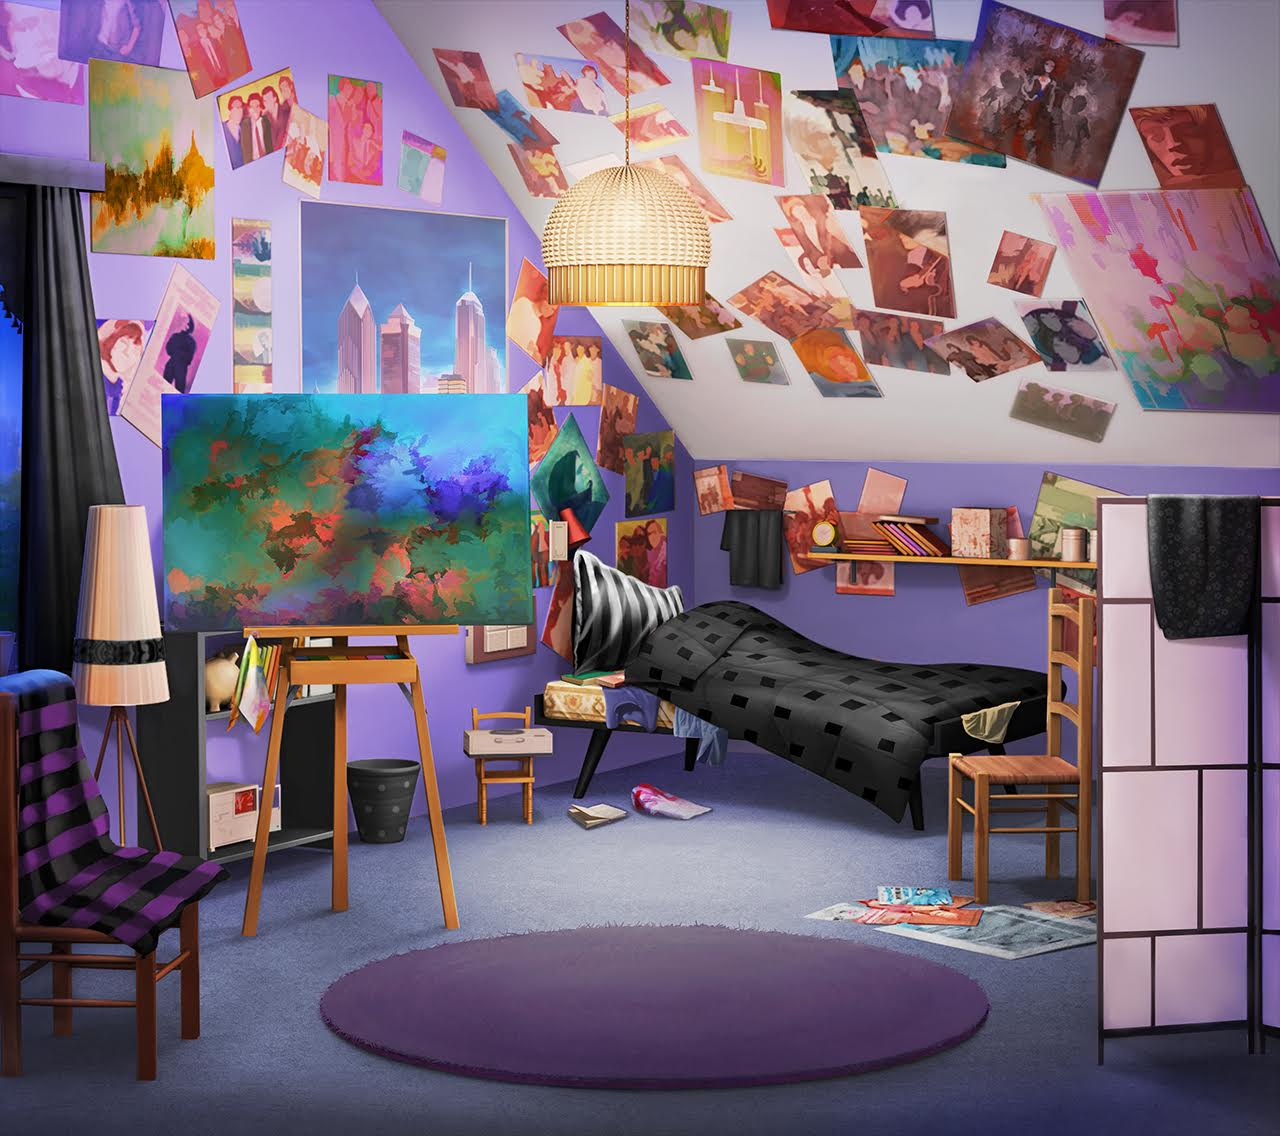 Episodeinteractive Dcon Pv1 Back INT JANIS DORM ROOM NIGHT